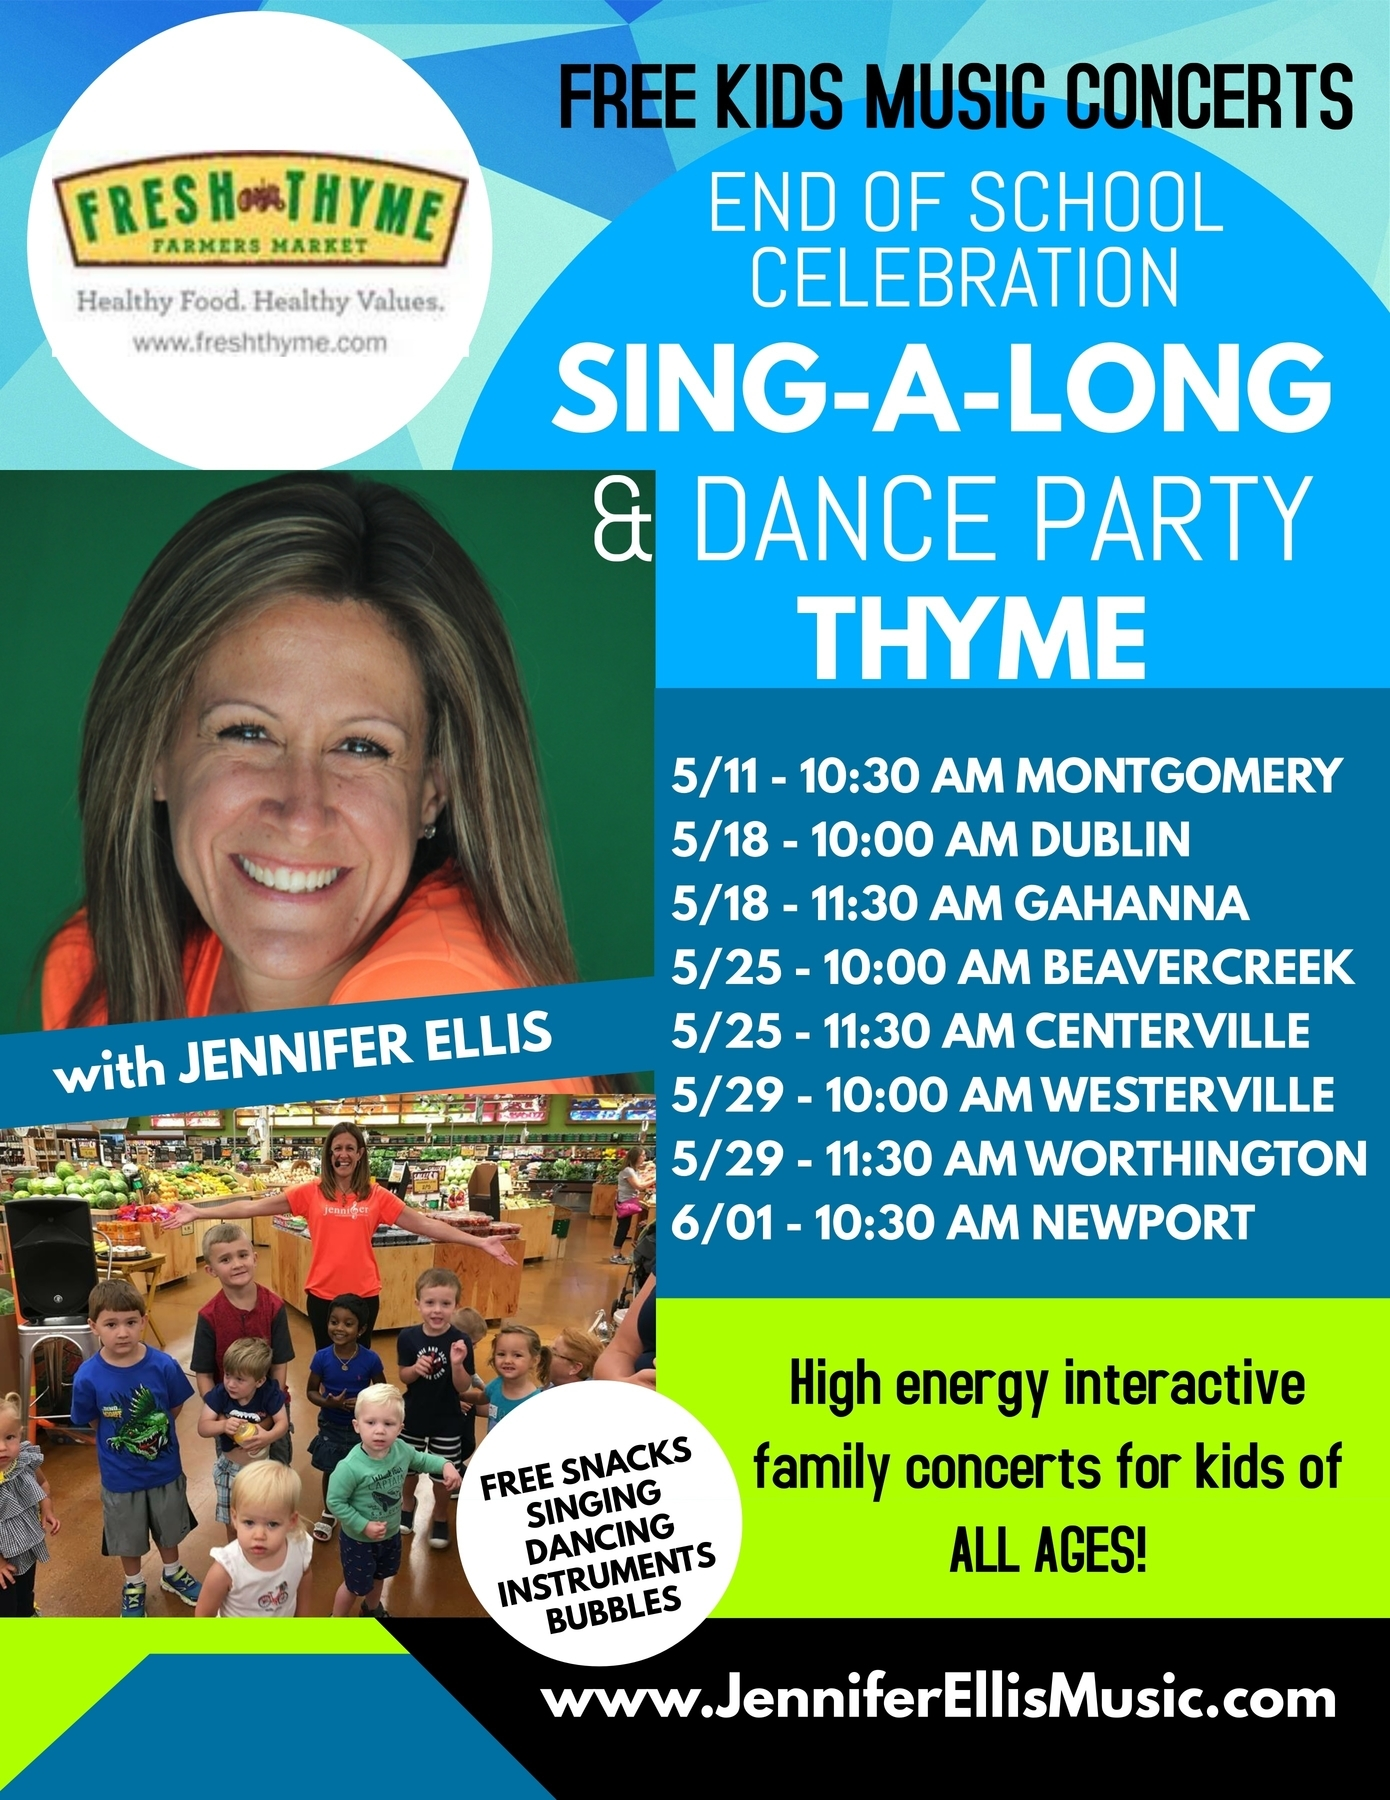 Jennifer Ellis End of School Celebration Sing-a-long and Dance Party